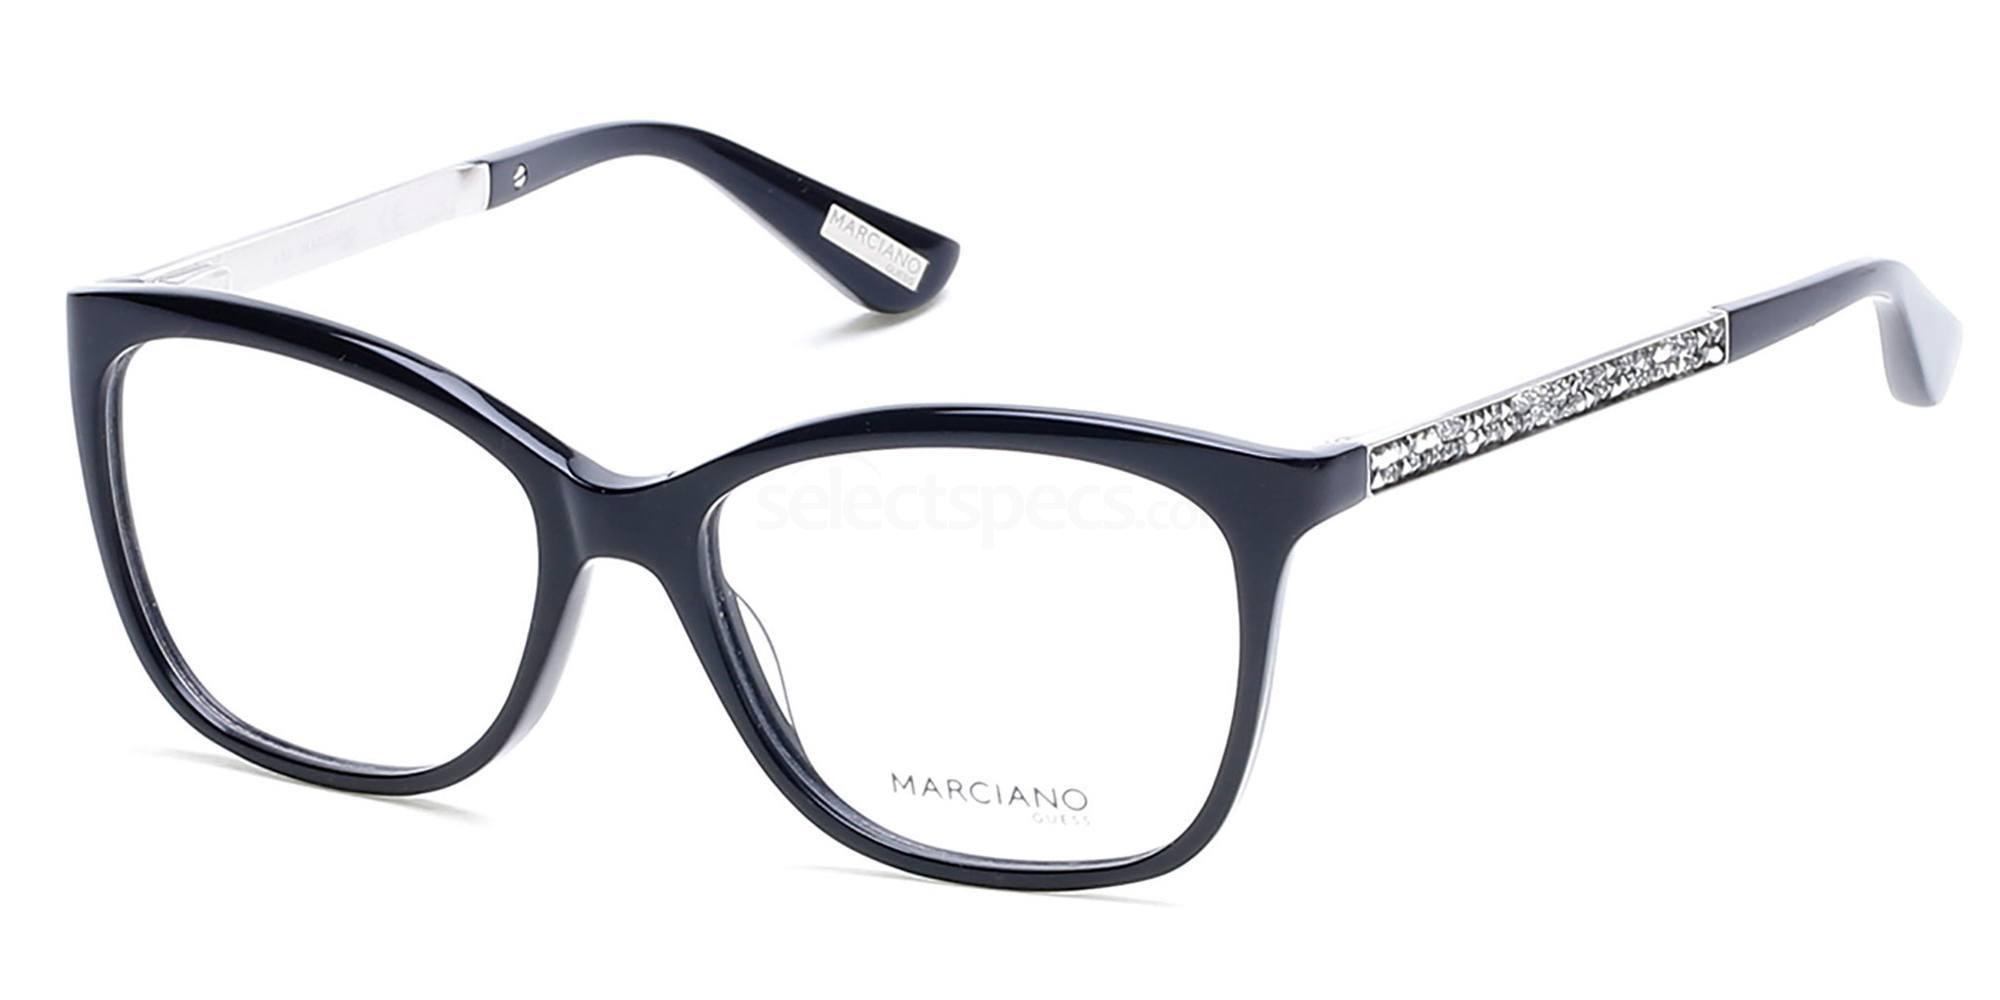 001 GM0281 Glasses, Guess by Marciano